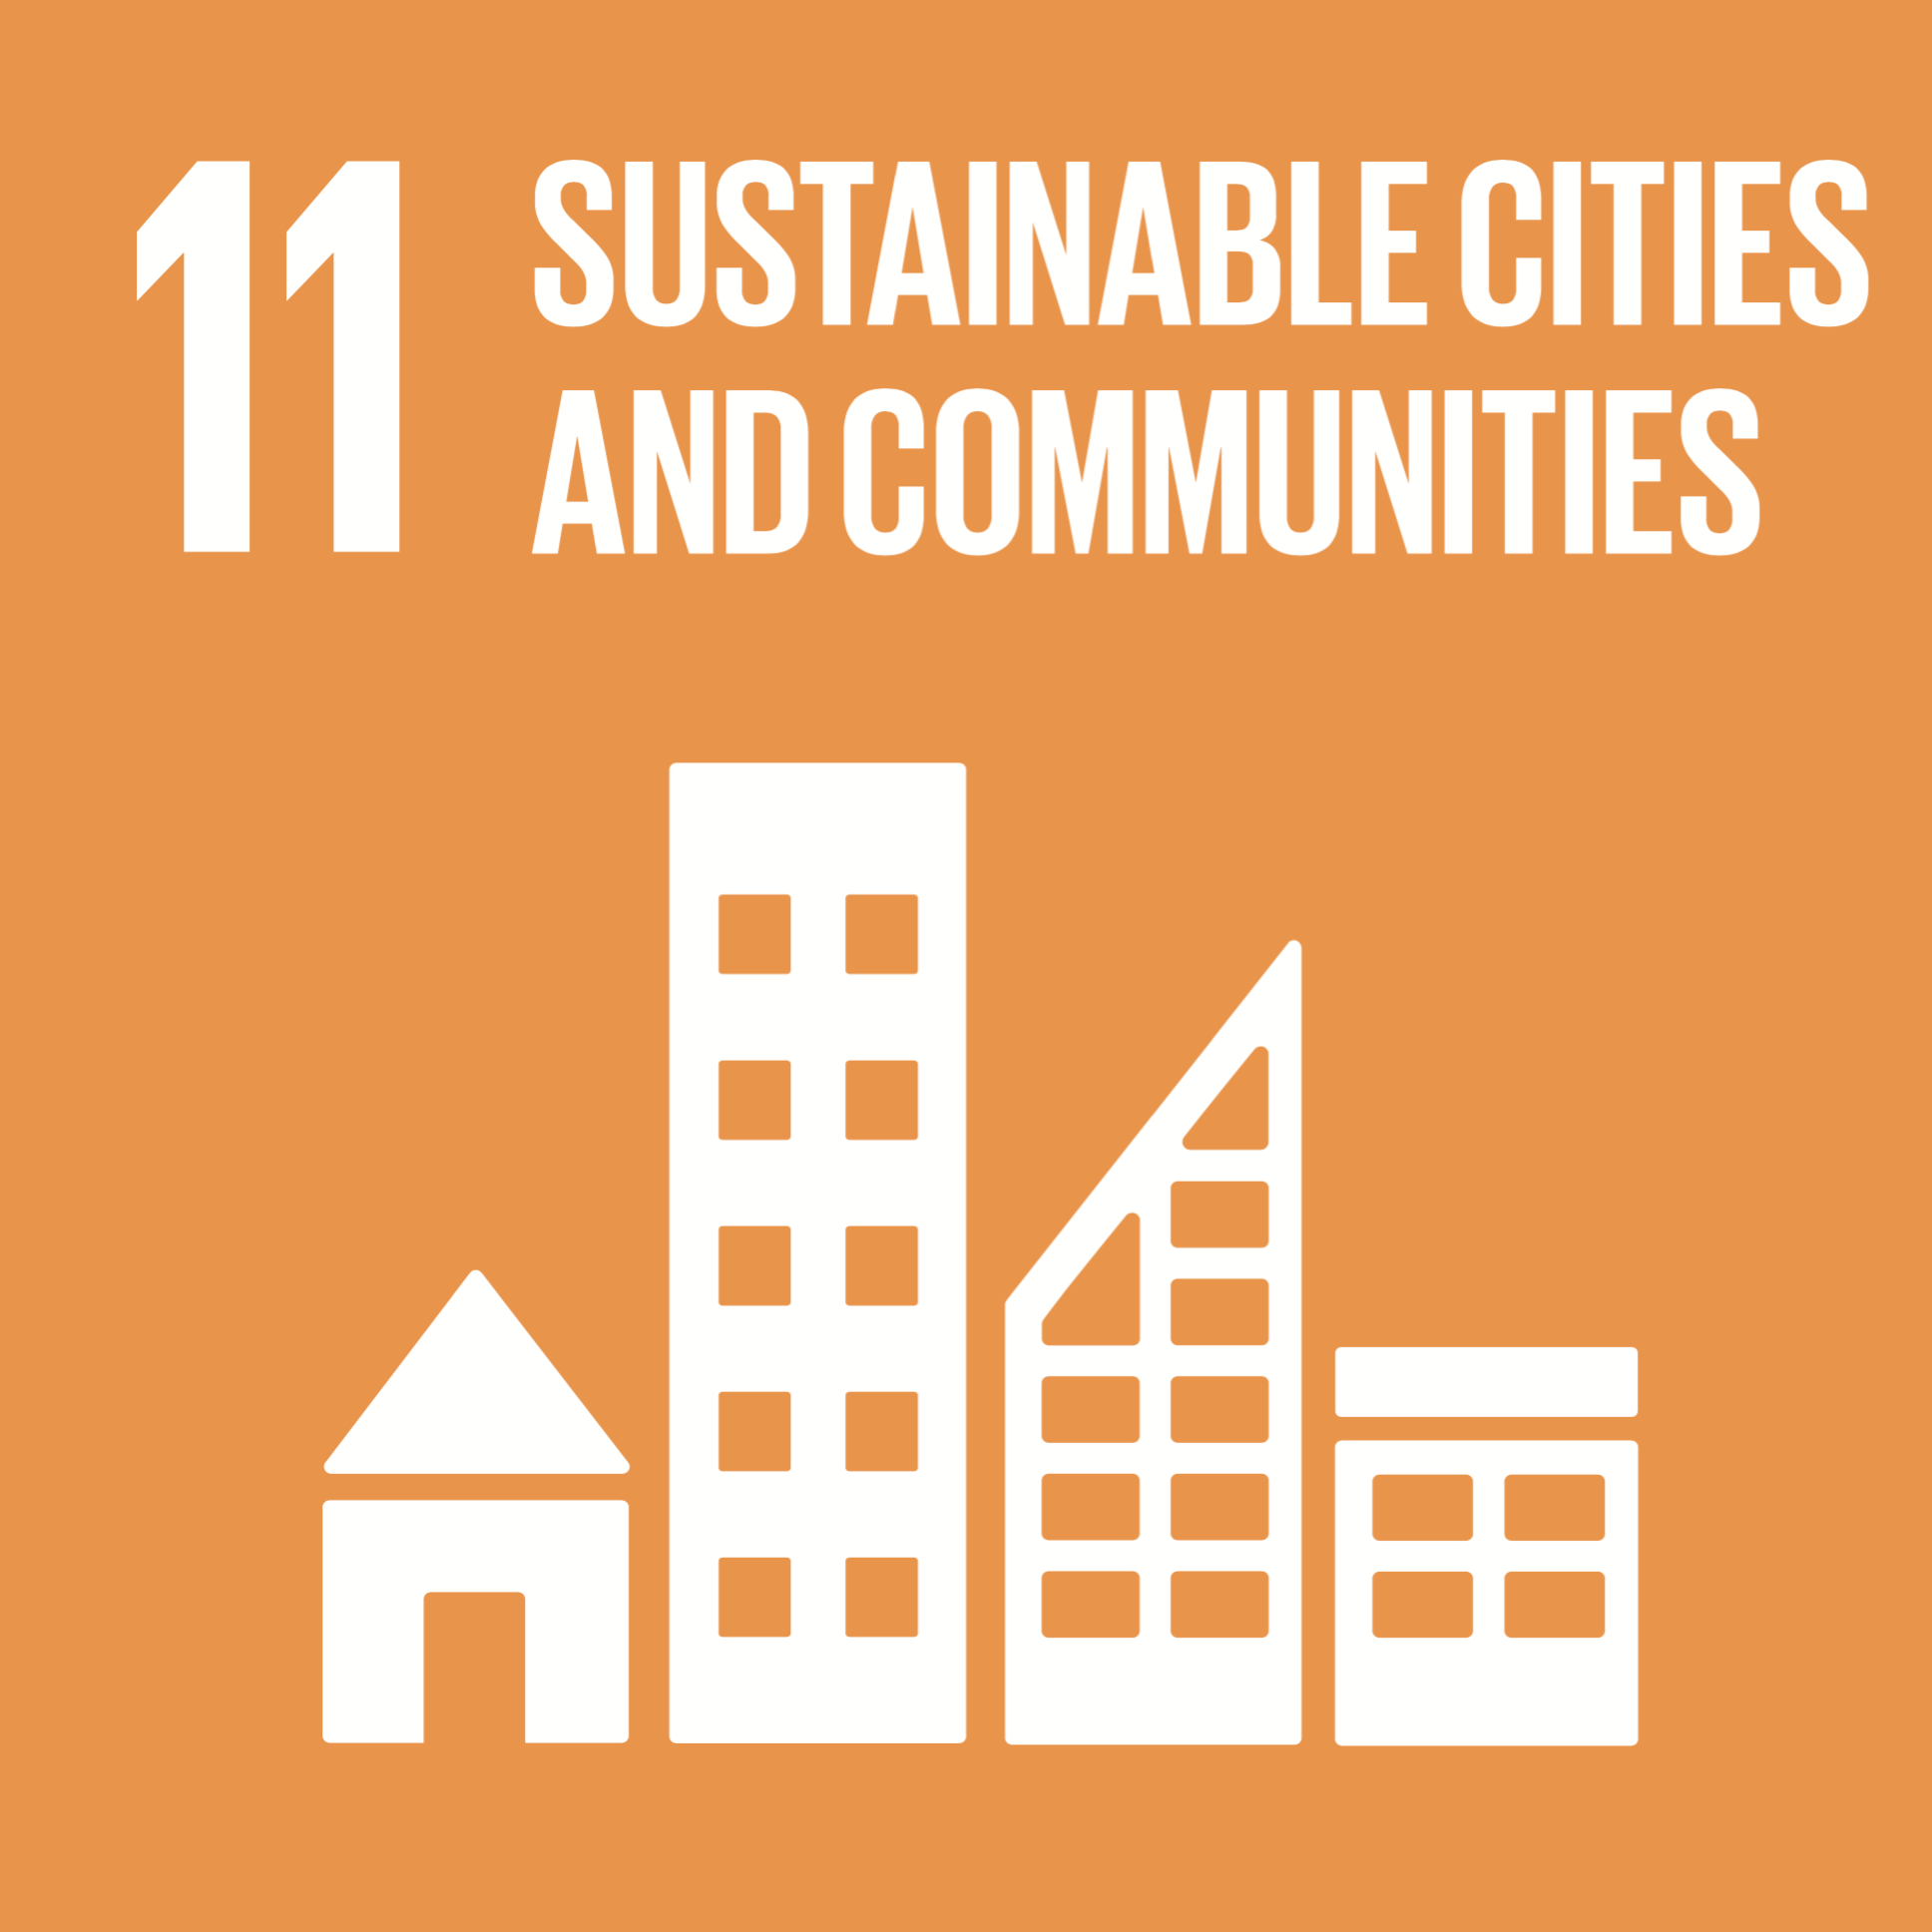 Sustainable Development Goals 11